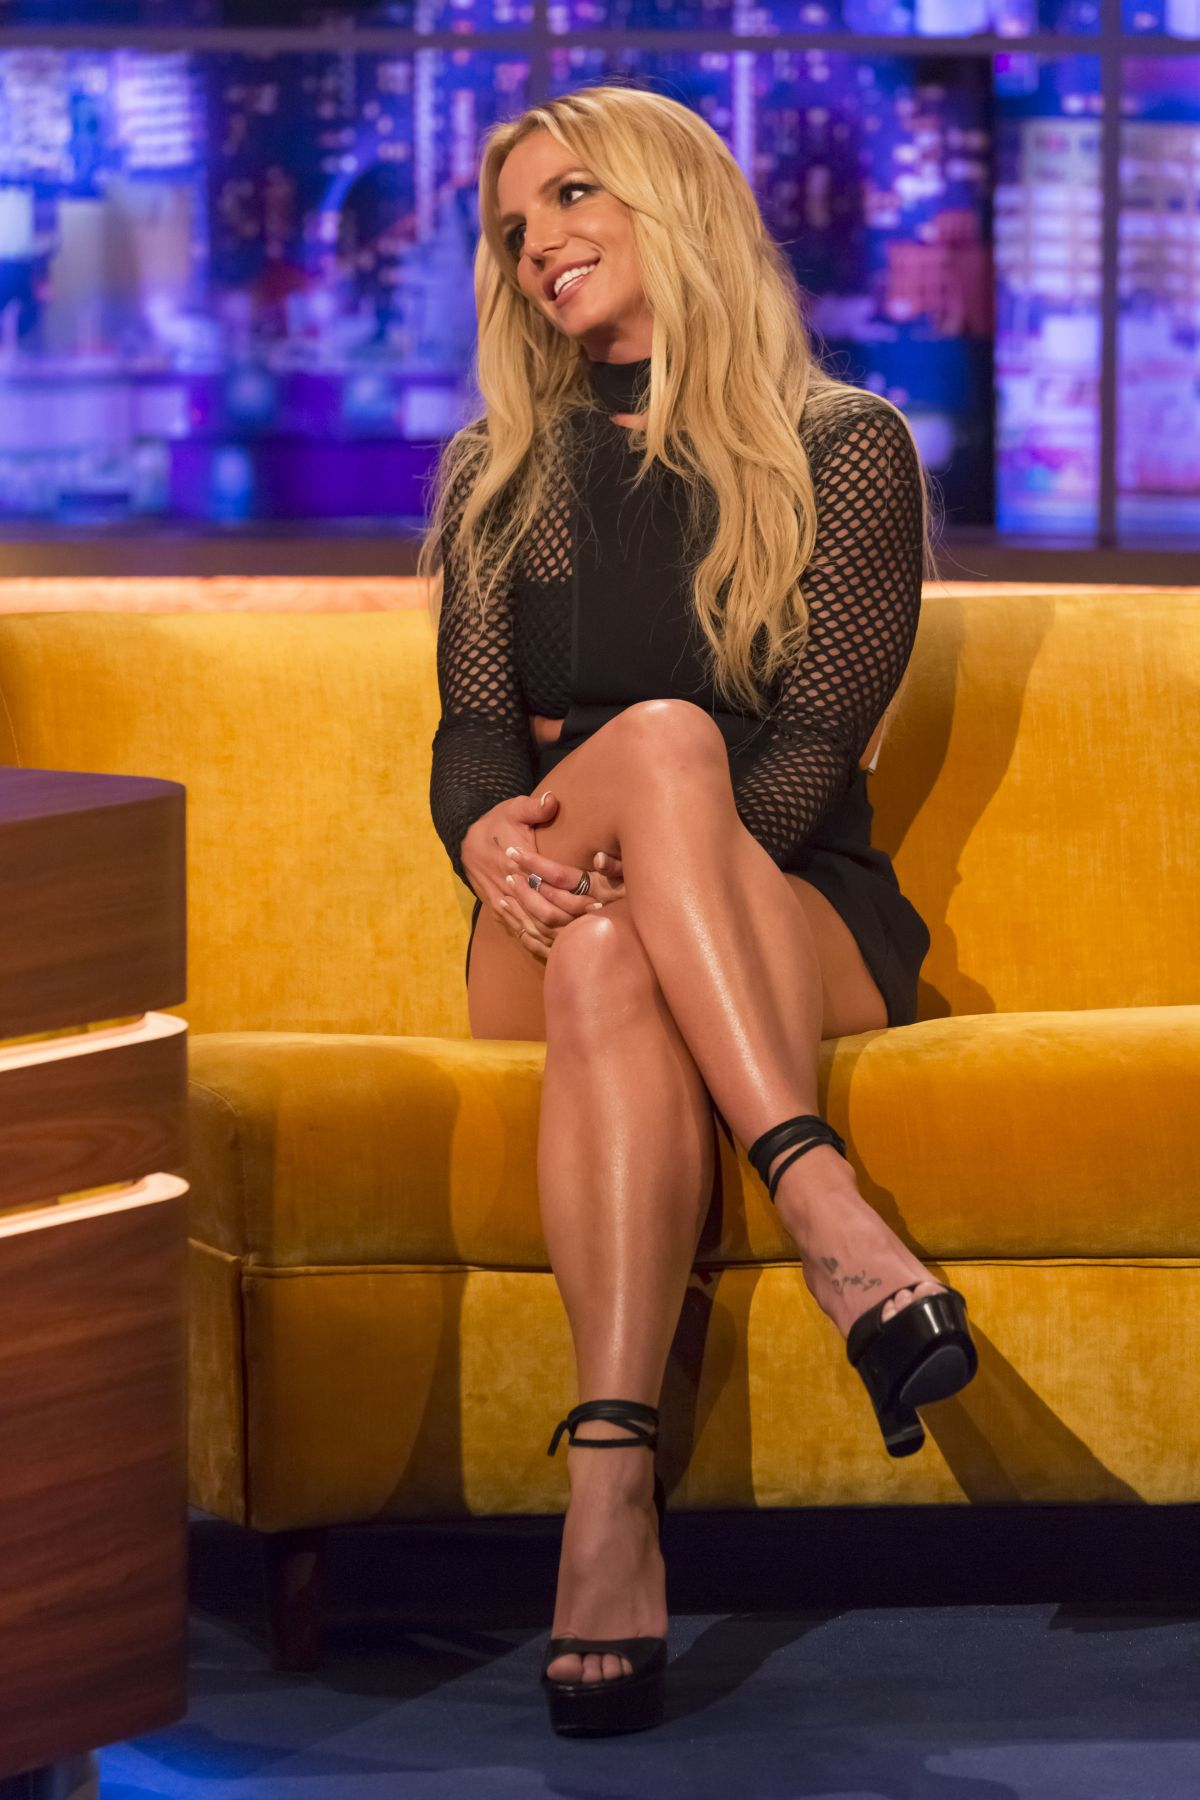 BRITNEY SPEARS at Jonathan Ross Show in London 09/30/2016 – HawtCelebs